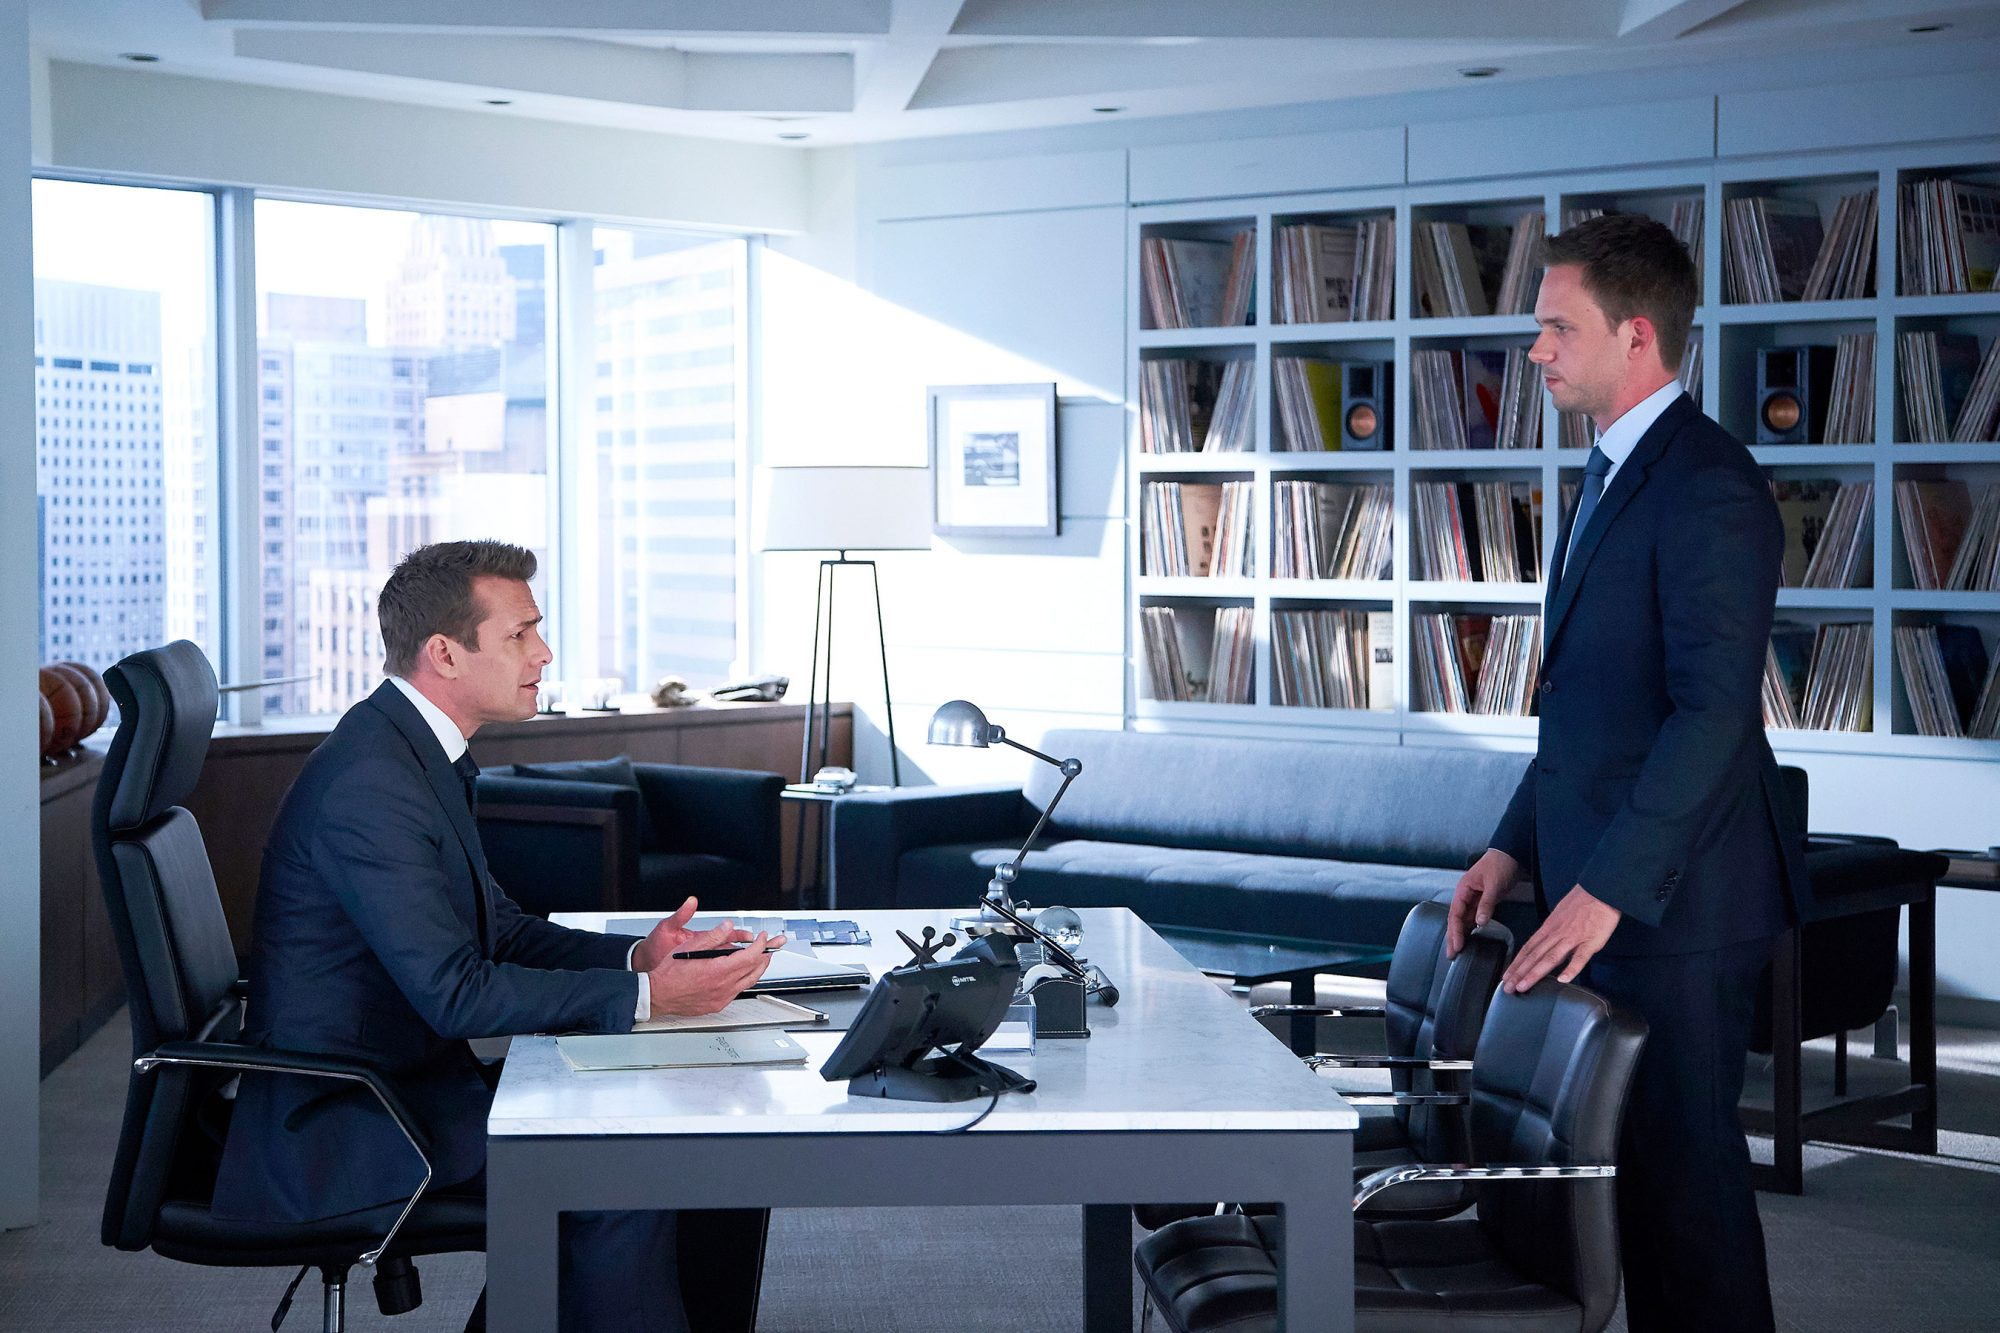 suits recap season 6 episode 12 ew com suits recap season 6 episode 12 ew com